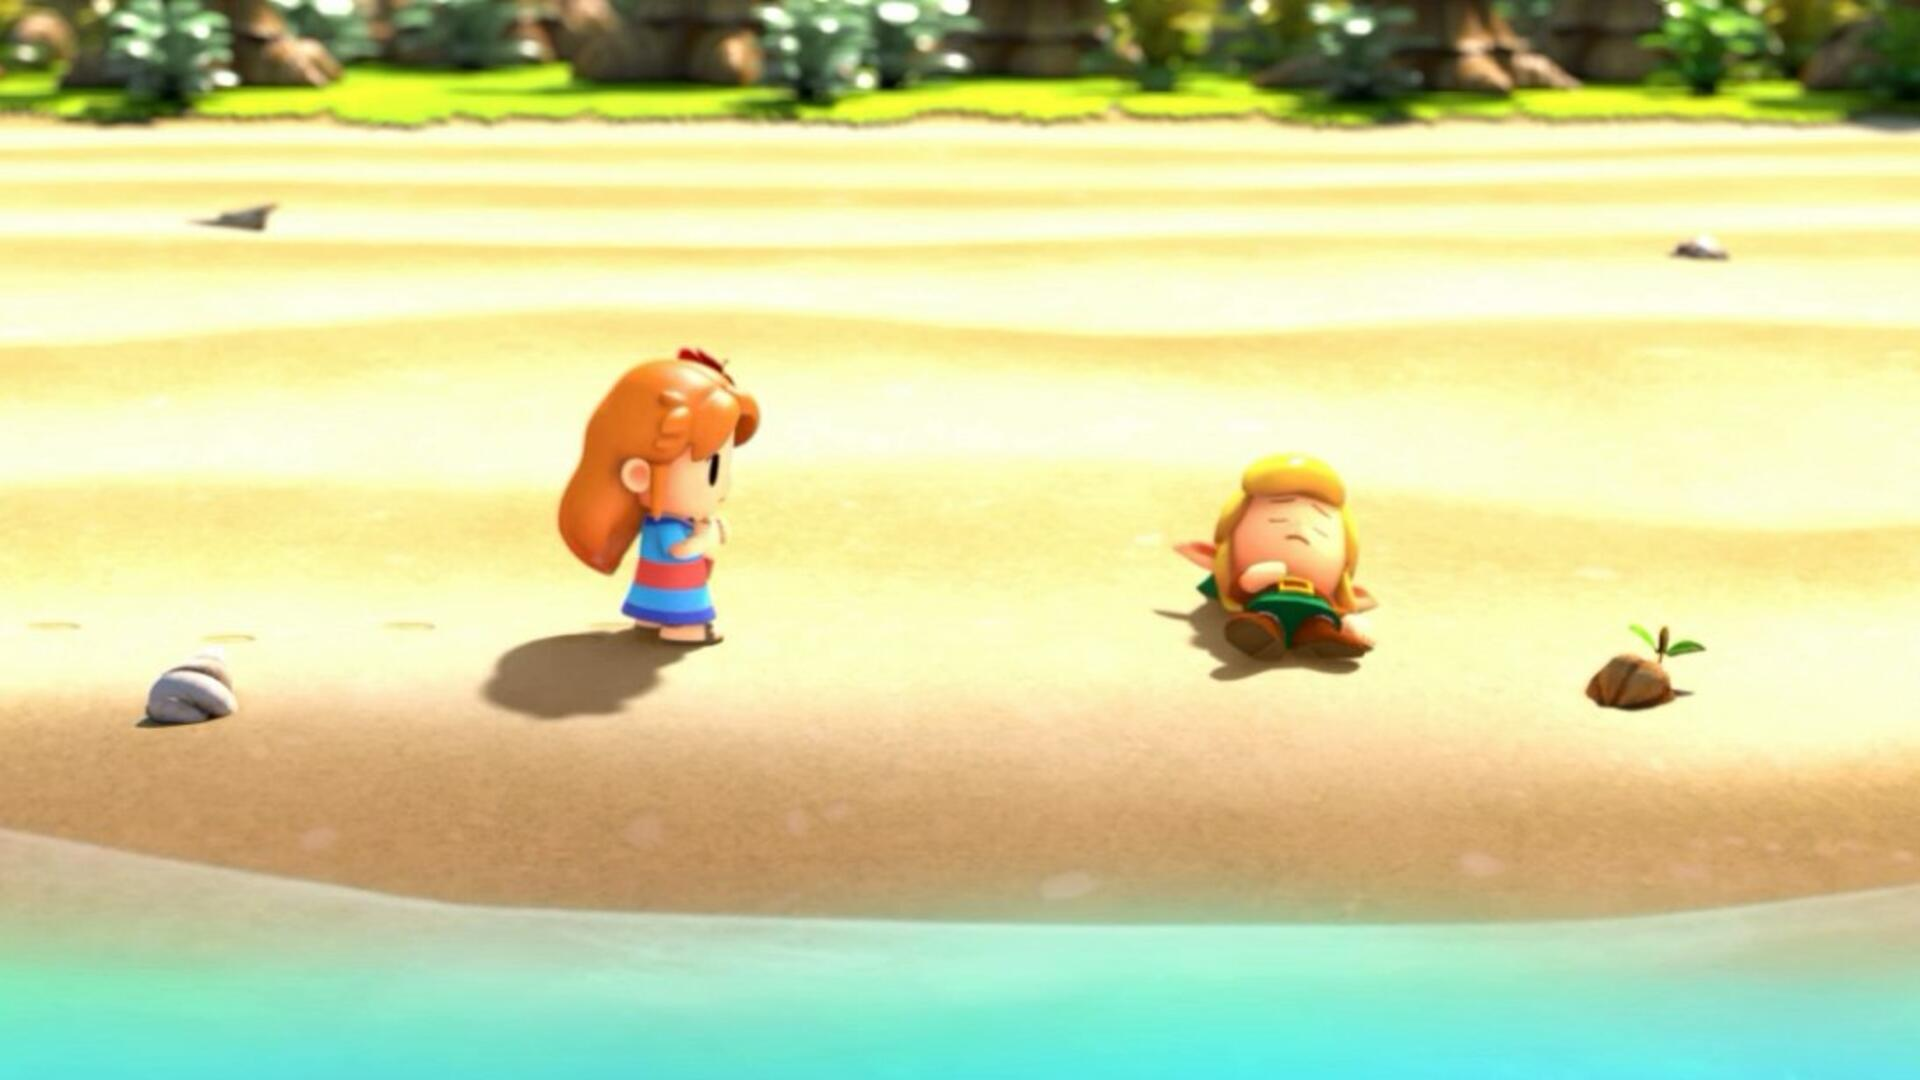 Zelda Link's Awakening Mysterious Forest - How to Get Past the Raccoon and Find the Tail Key